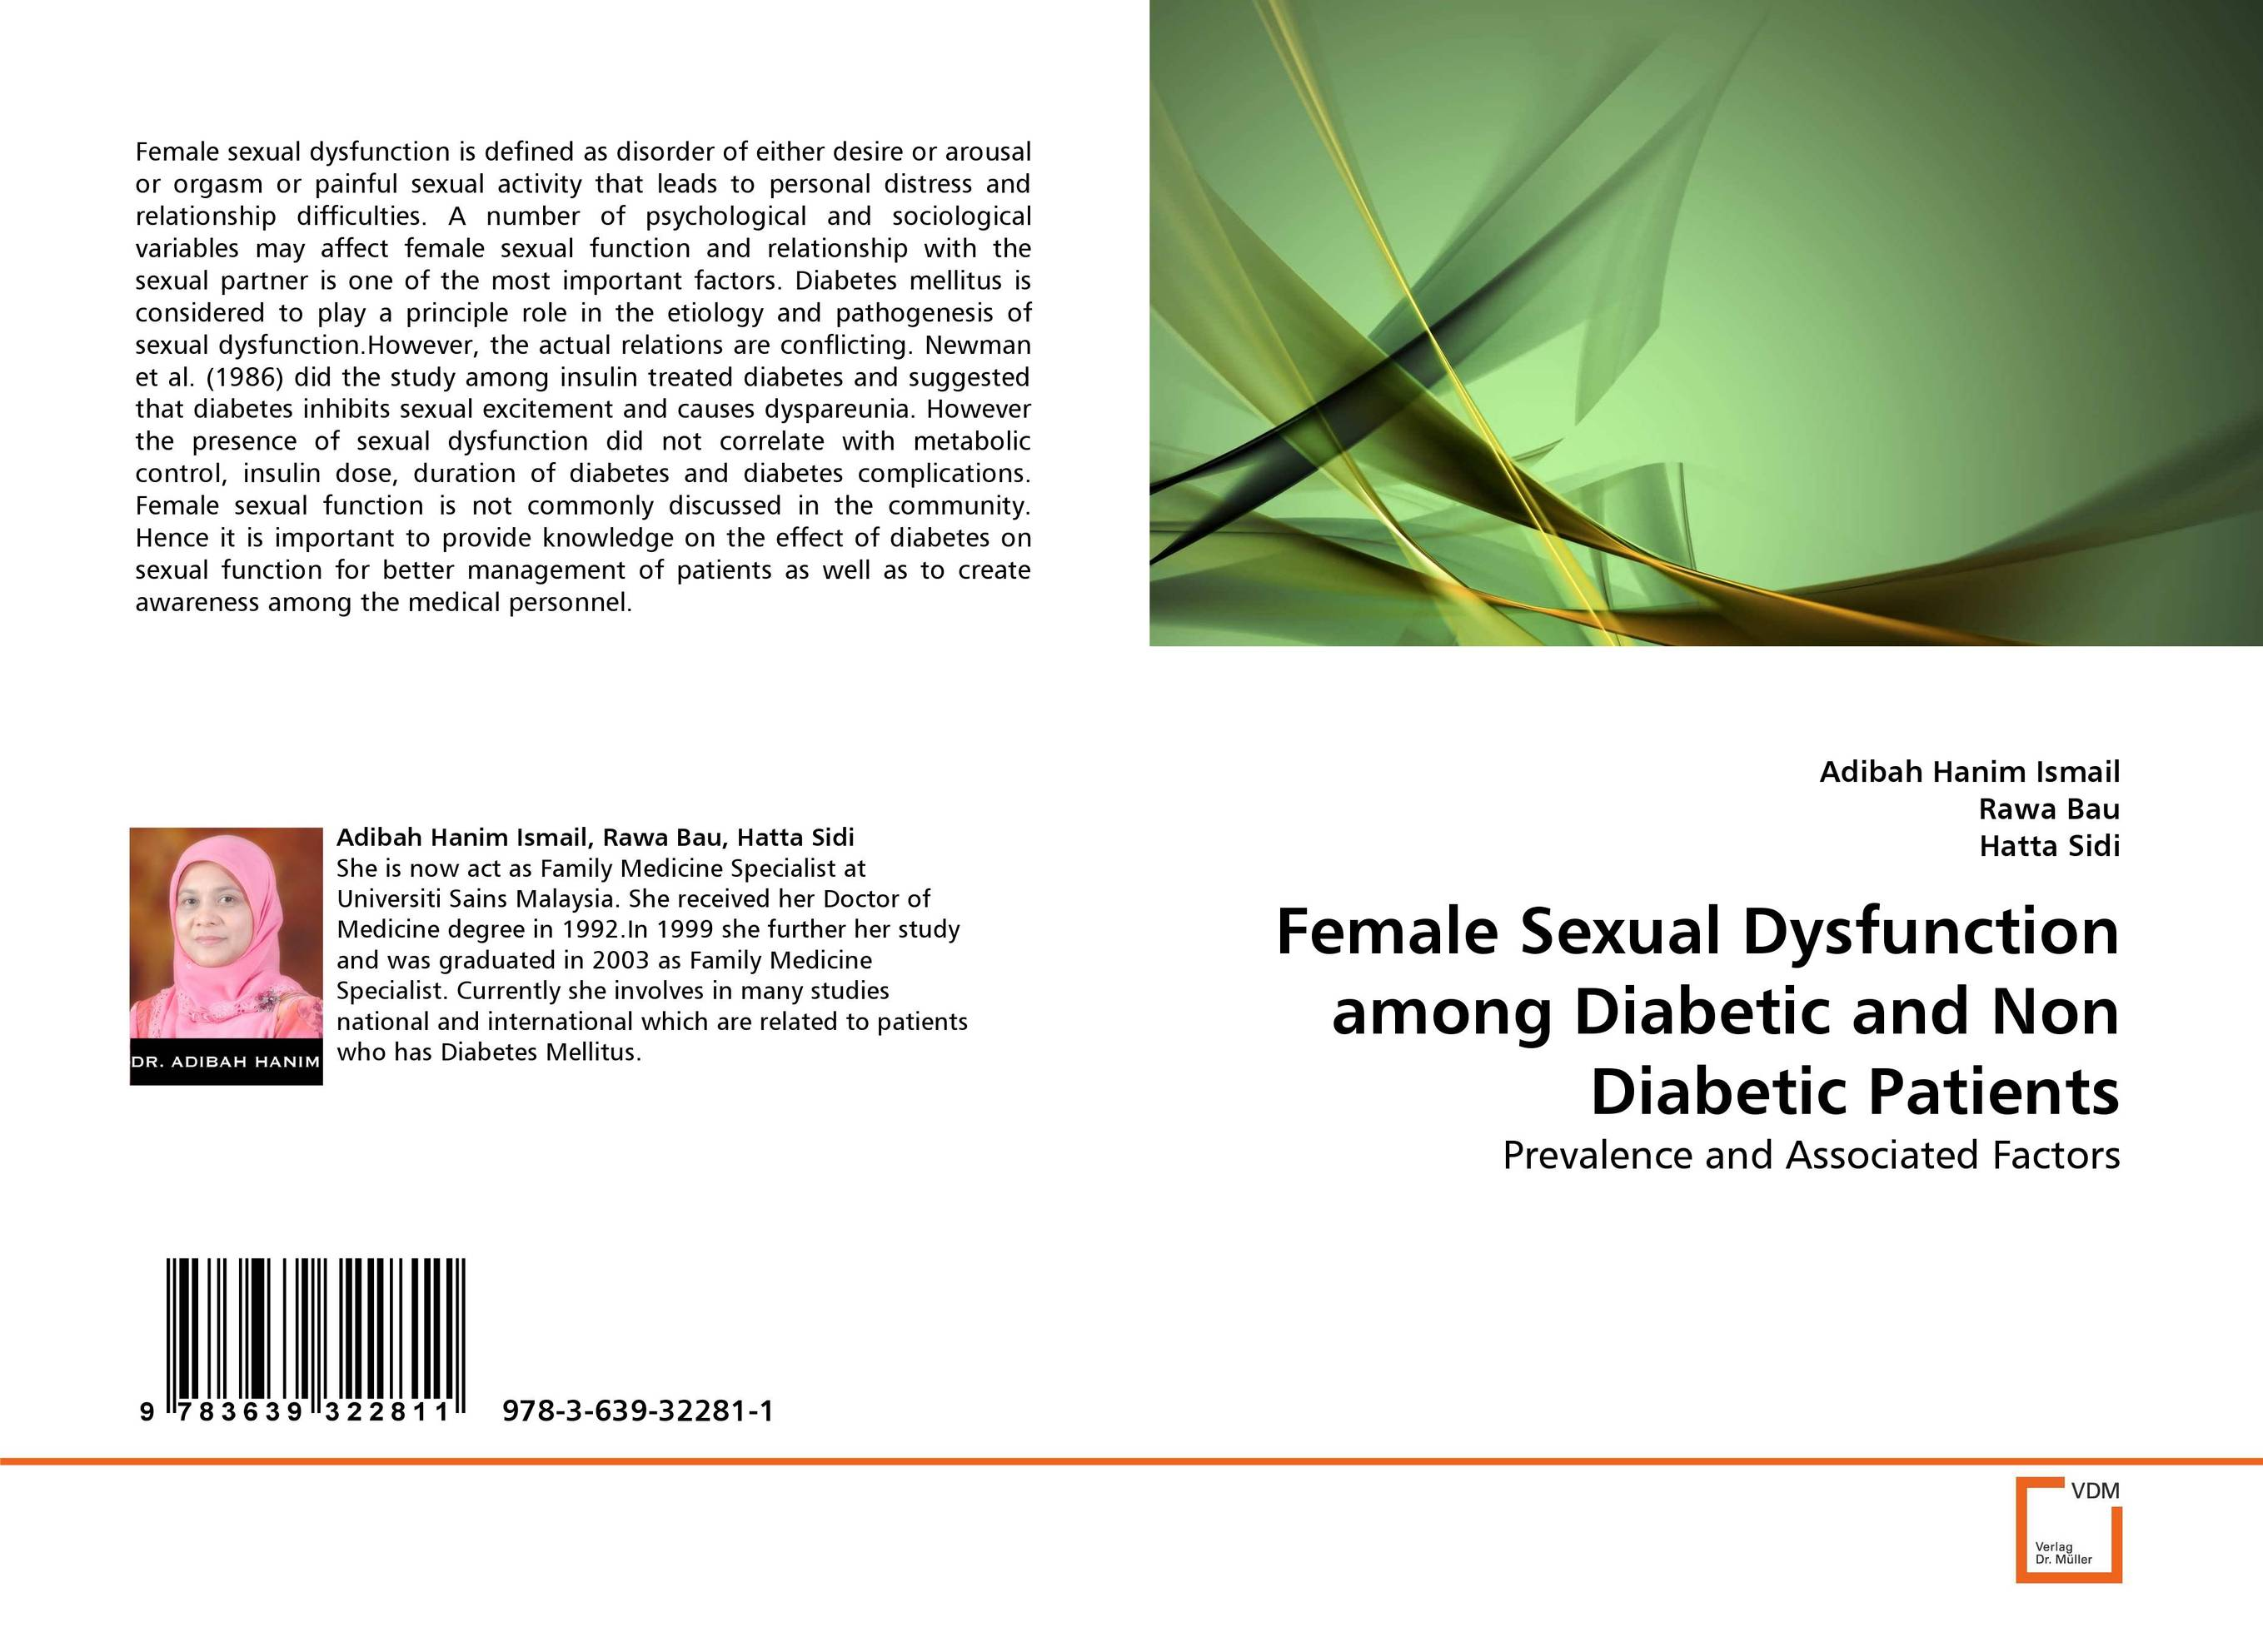 Female Sexual Dysfunction among Diabetic and Non Diabetic Patients 5boxes 10pcs prostatitis pad to treat prostate disease sexual dysfunction of male pad urological pad painful urination